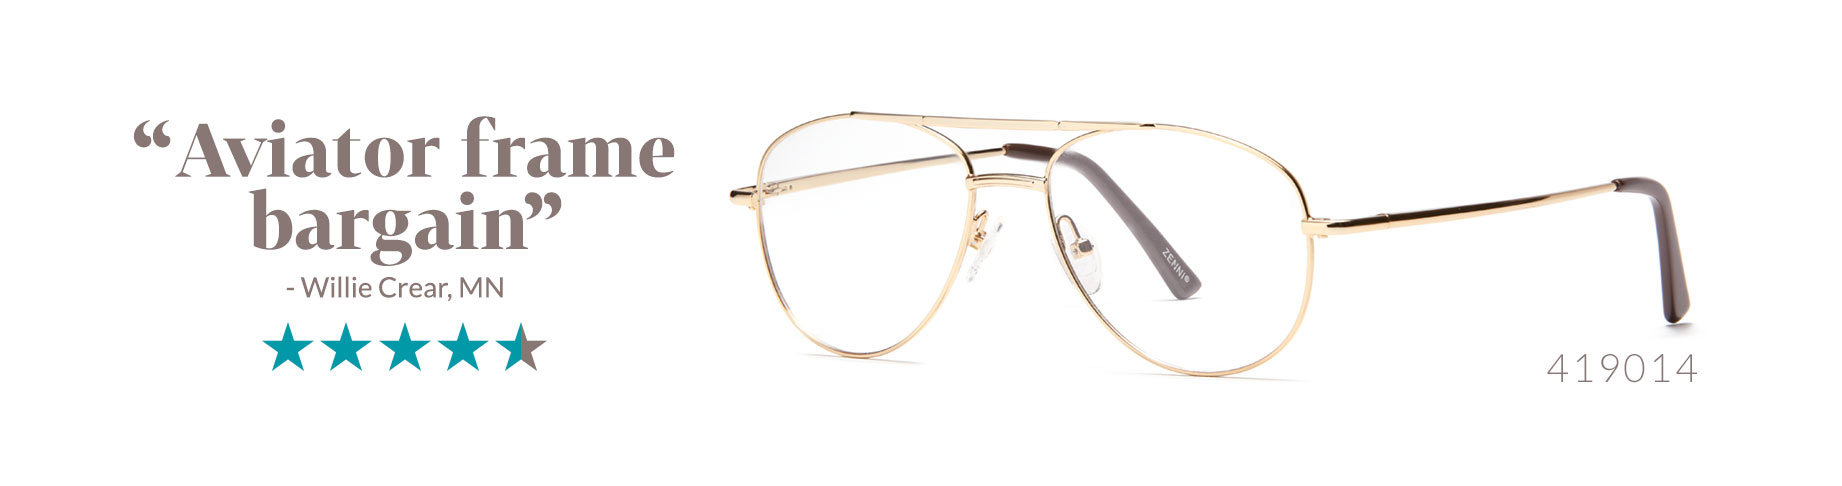 6862b29c991 Gold Vintage-Inspired Aviator Glasses  419014